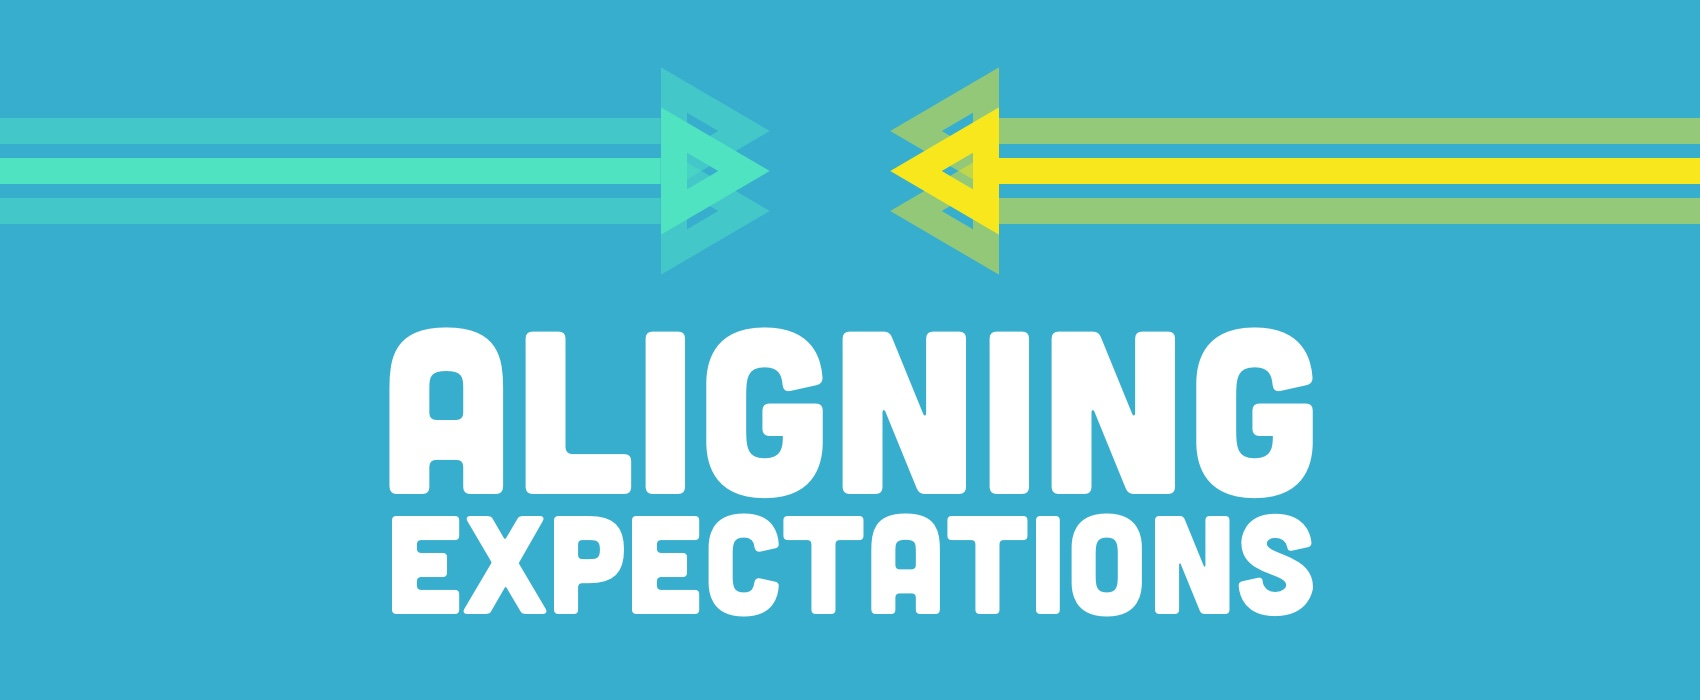 8 Things You Should Expect When Working with an Agency